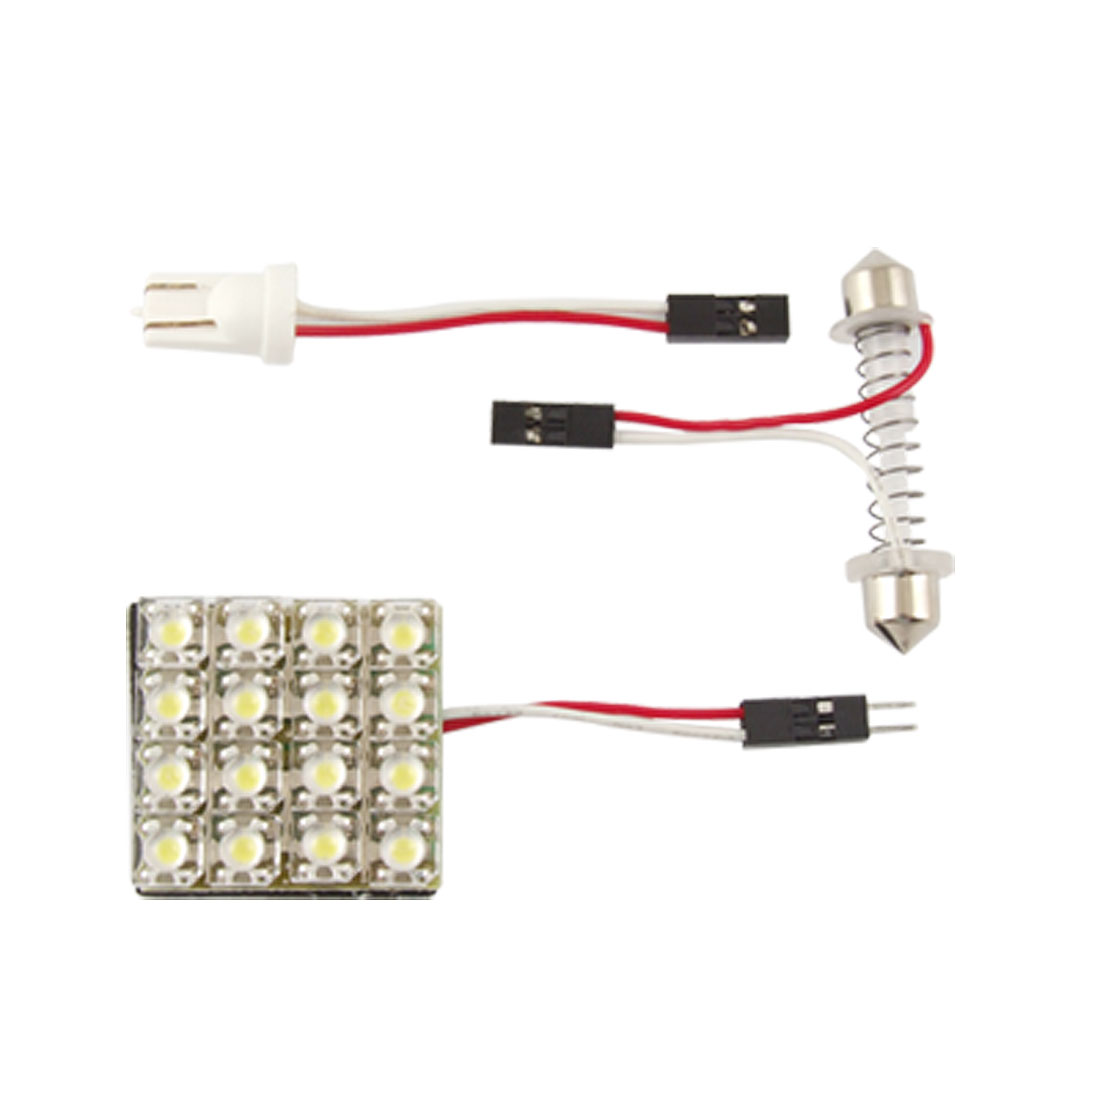 White 16 SMD LED Festoon Car Roof Dome Light Lamp Bulb + T10